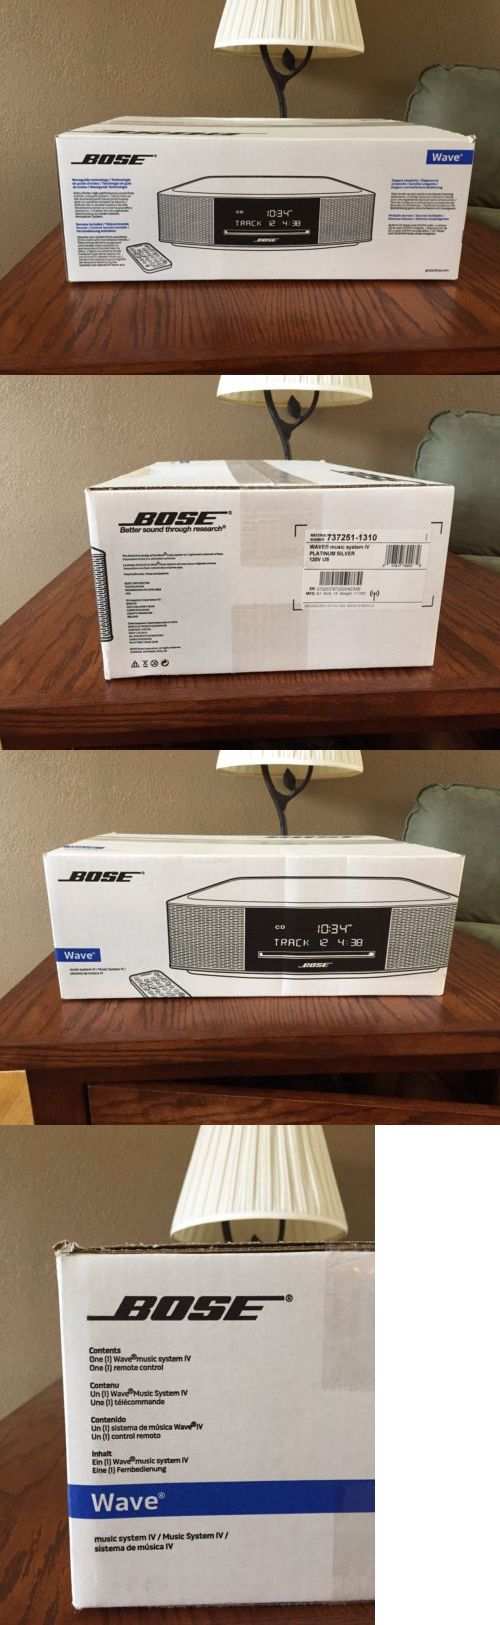 Compact and Shelf Stereos: Bose Wave Music System Iv - Cd Player And Radio - New In Box Never Opened!!! -> BUY IT NOW ONLY: $430 on eBay!